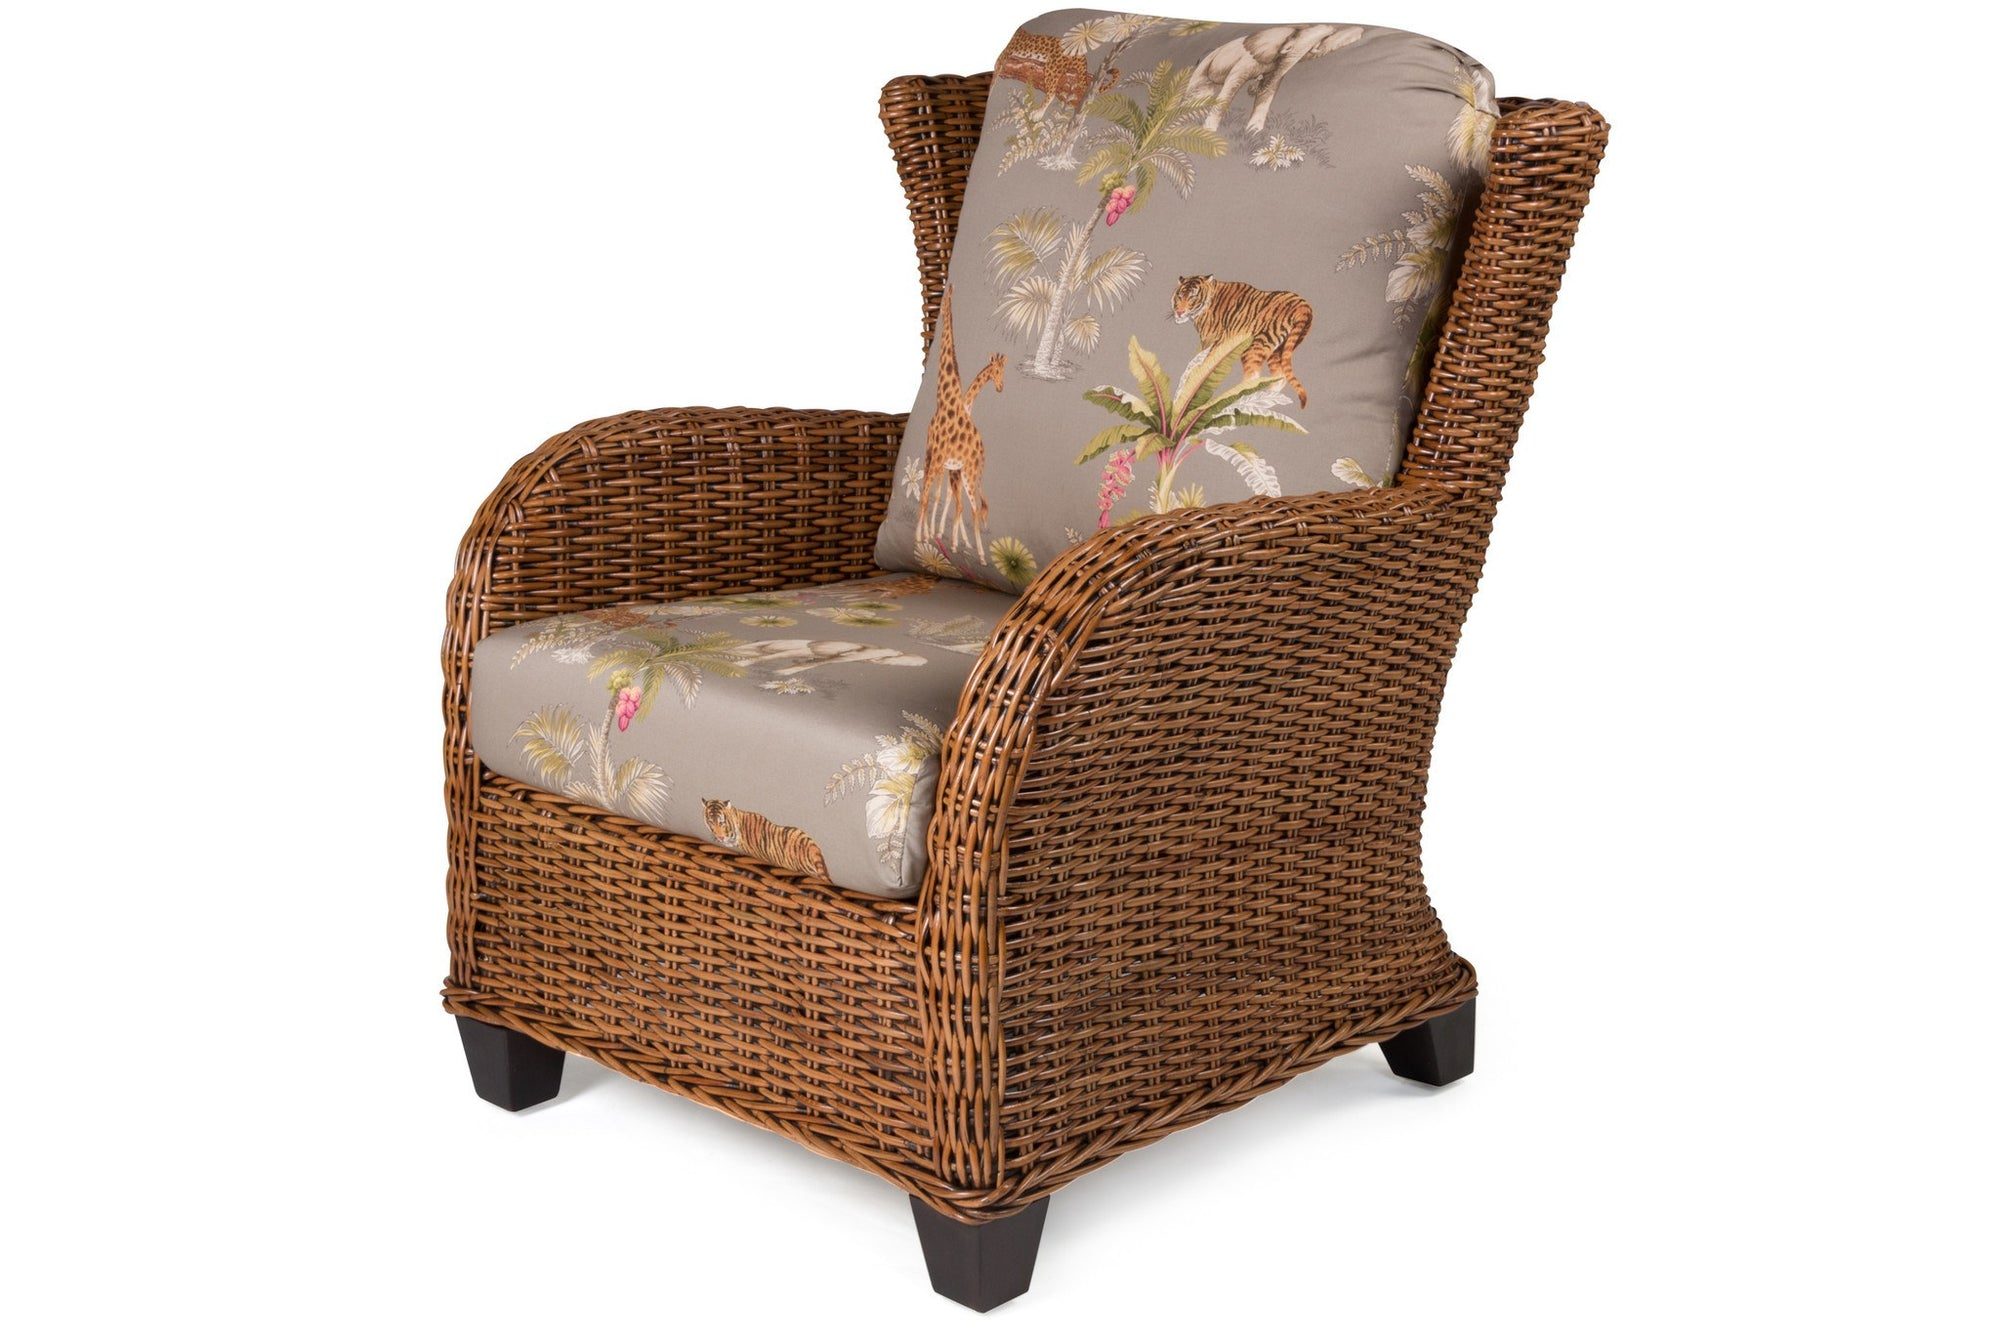 Designer Wicker & Rattan By Tribor Clarissa Porch Arm Chair Chair - Rattan Imports